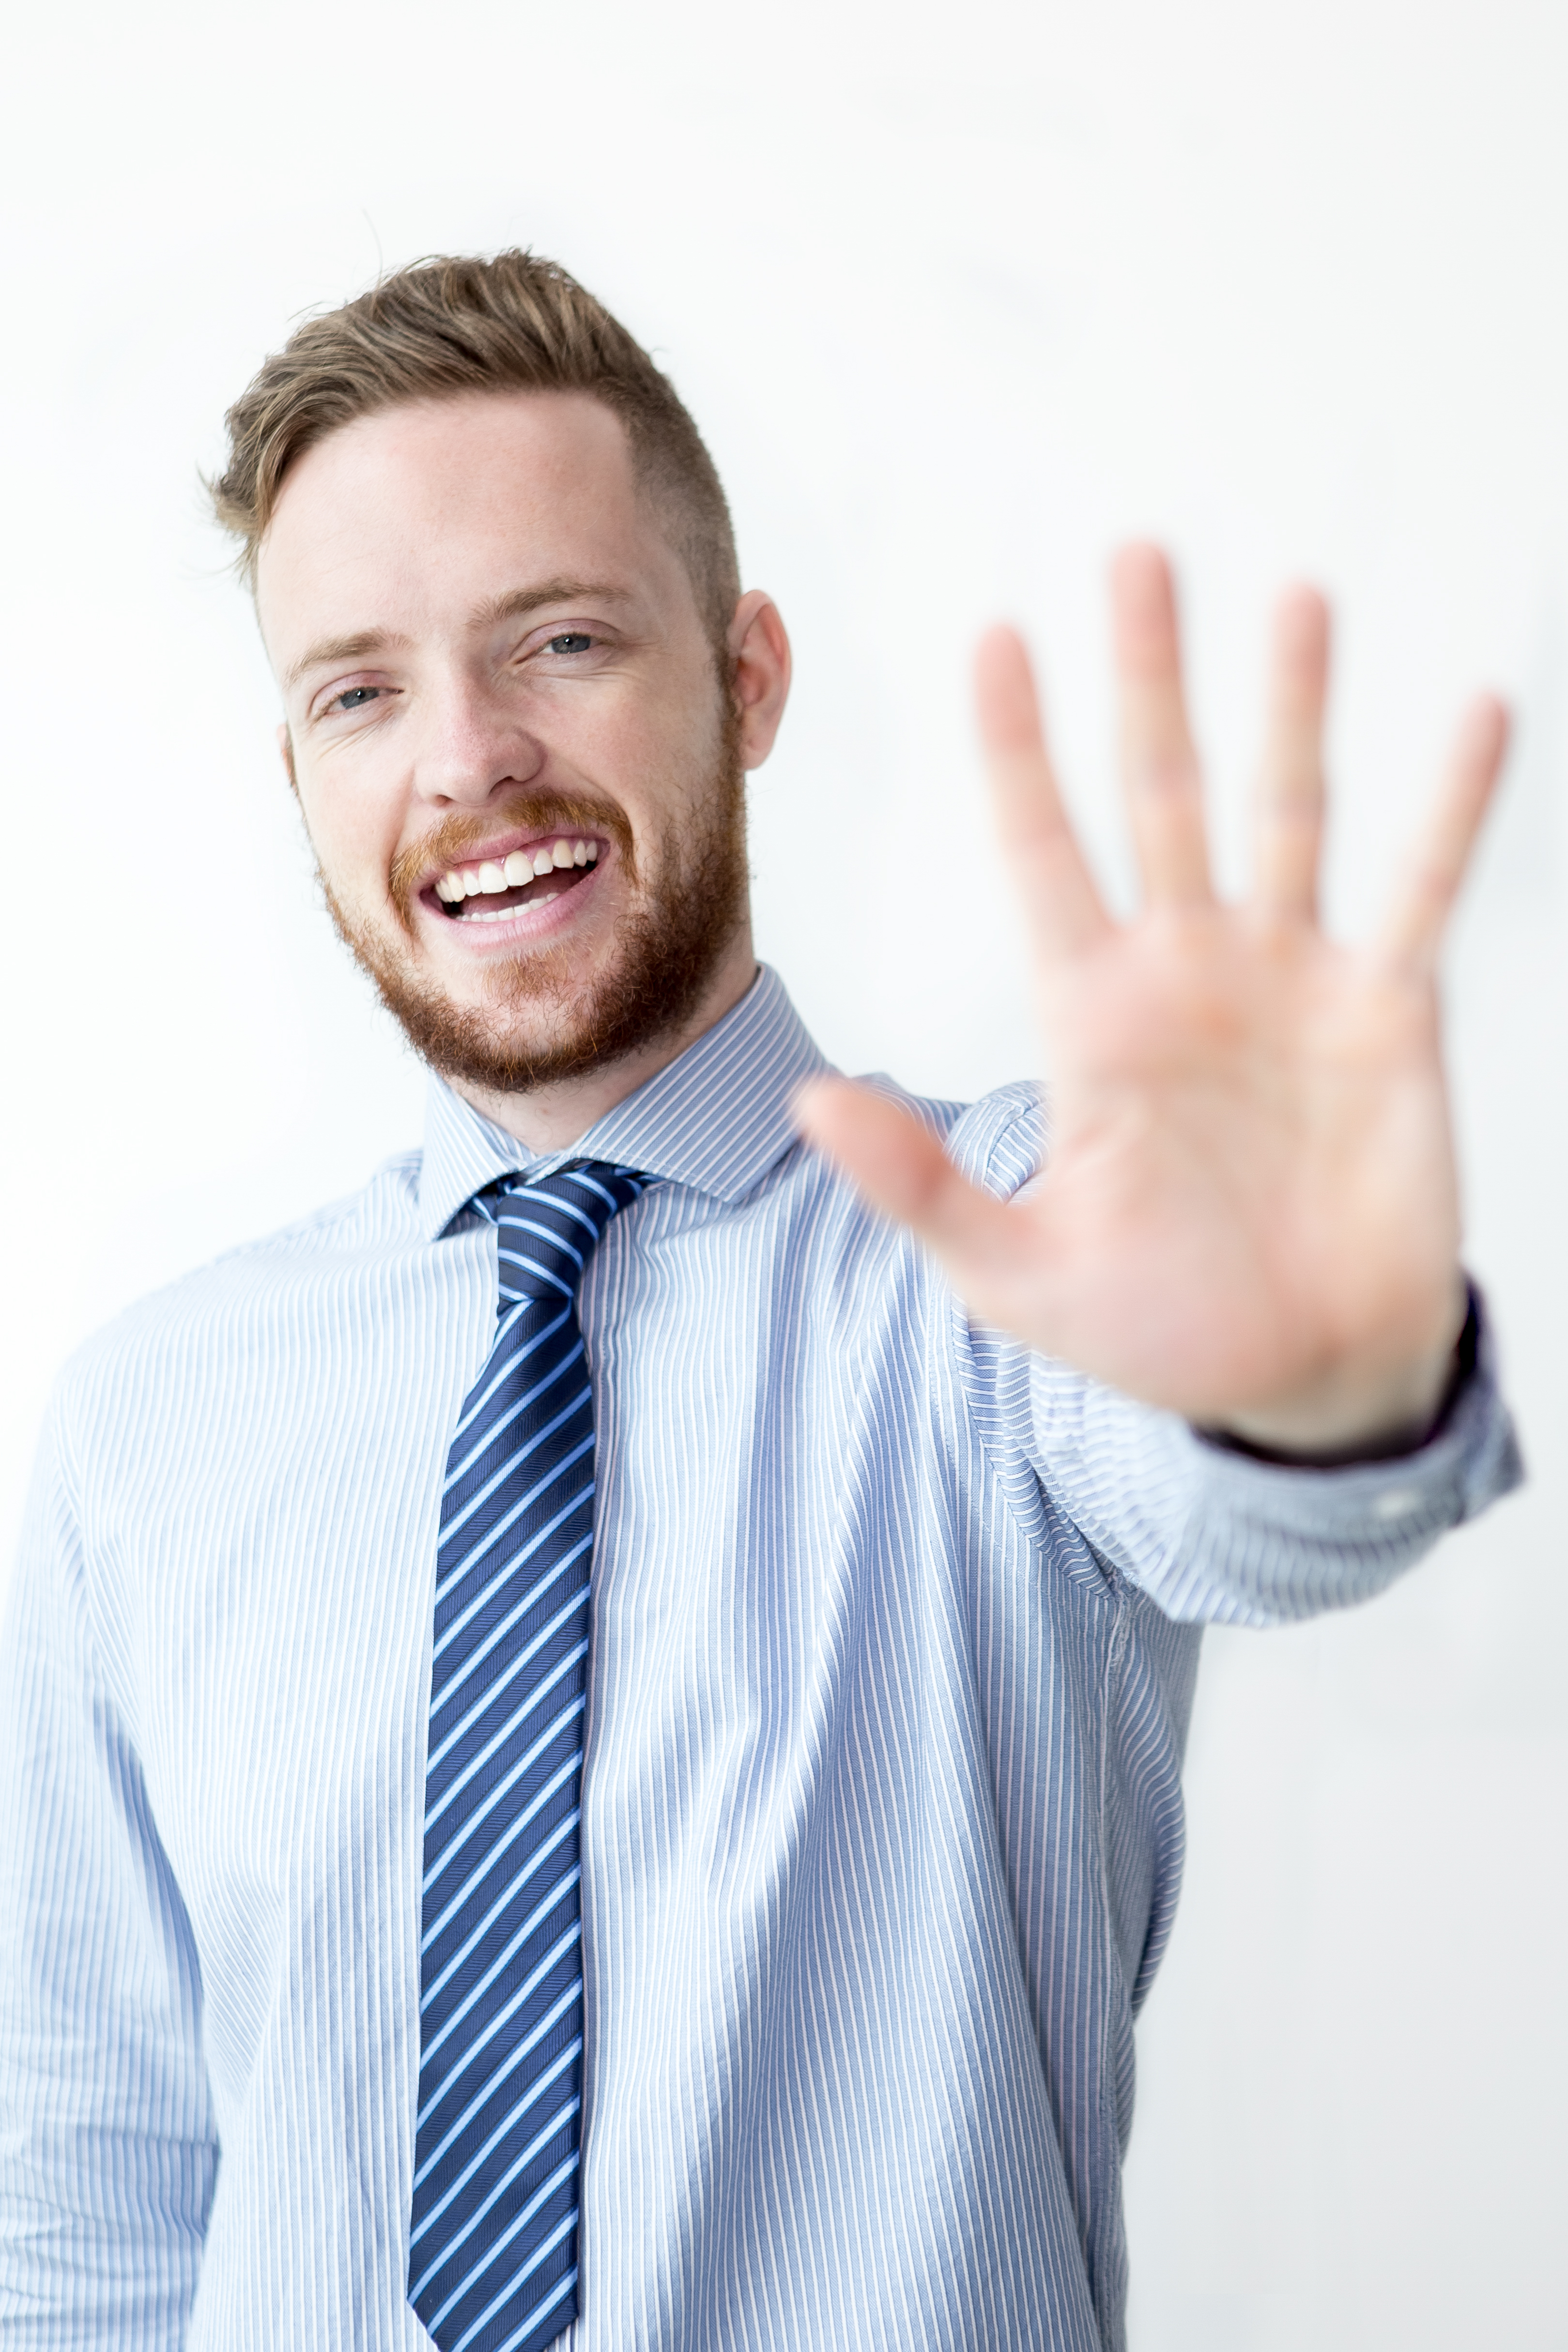 Closeup portrait of smiling young business man looking at camera and showing open palm or stop gesture. Isolated front view on white background.